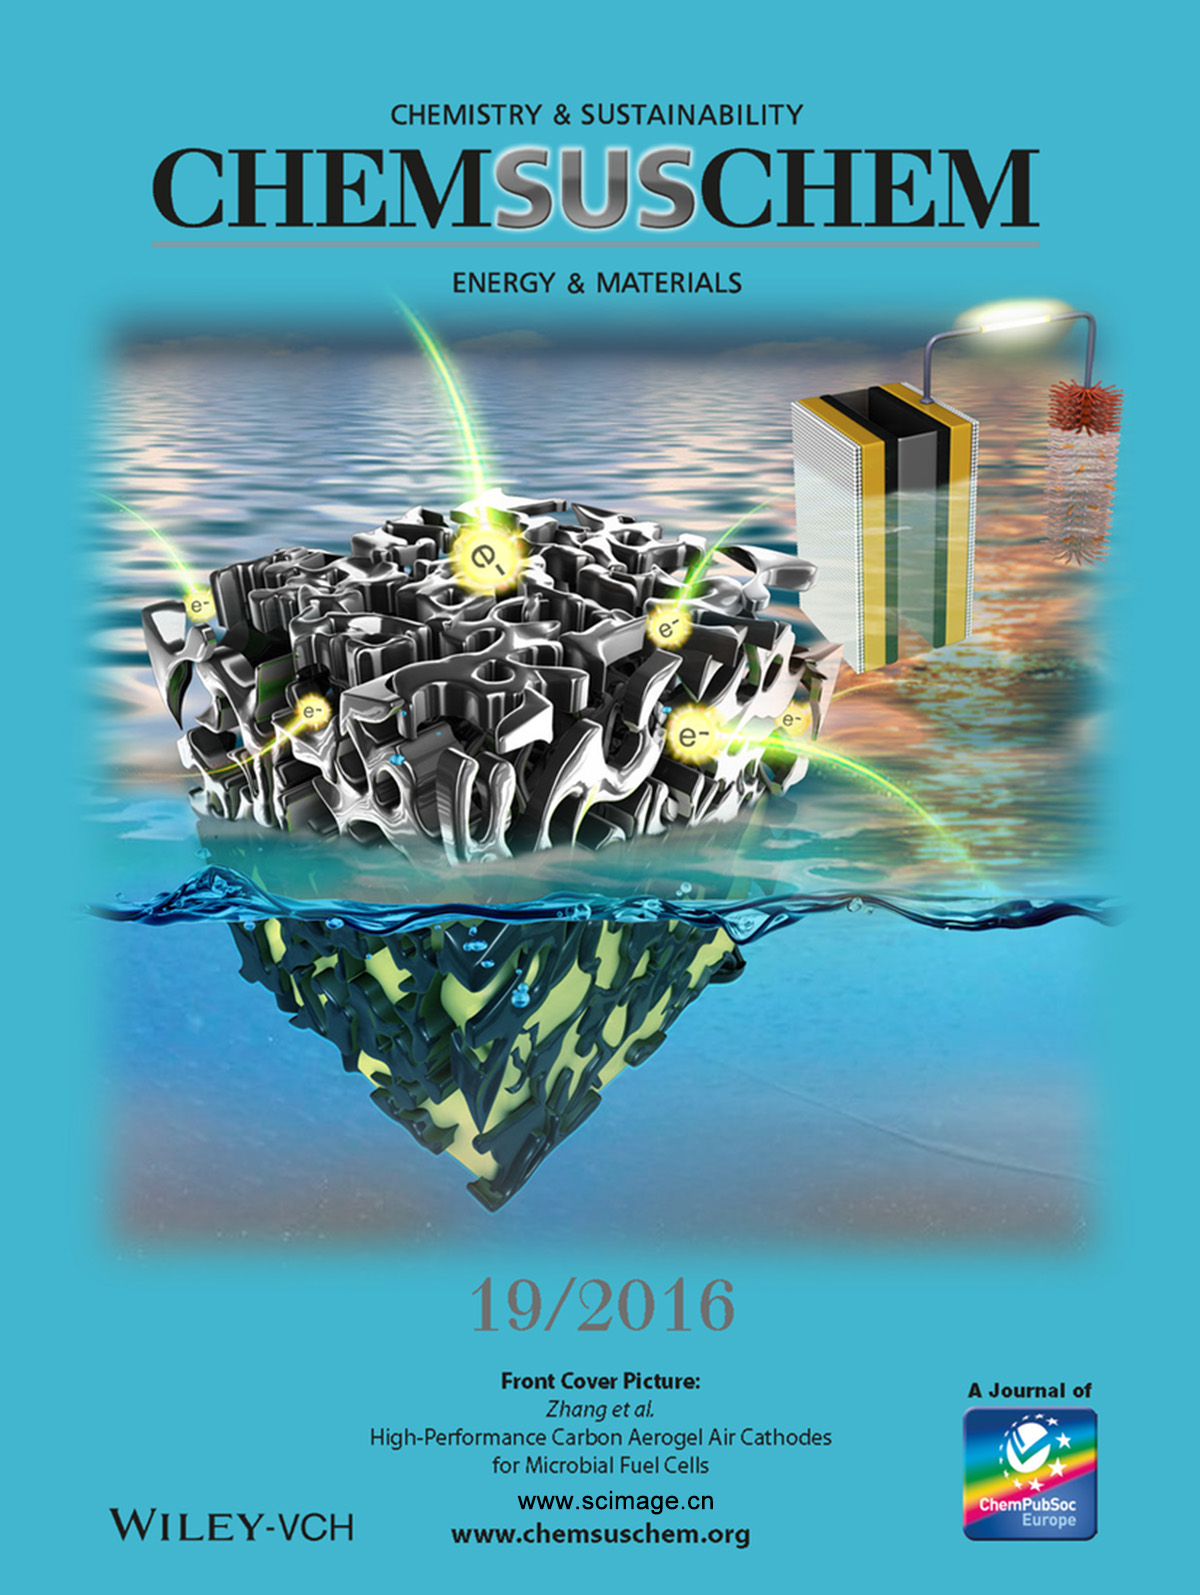 High-Performance Carbon Aerogel Air Cathodes for Microbial Fuel Cells (ChemSusChem 19/2016) (page 2717)